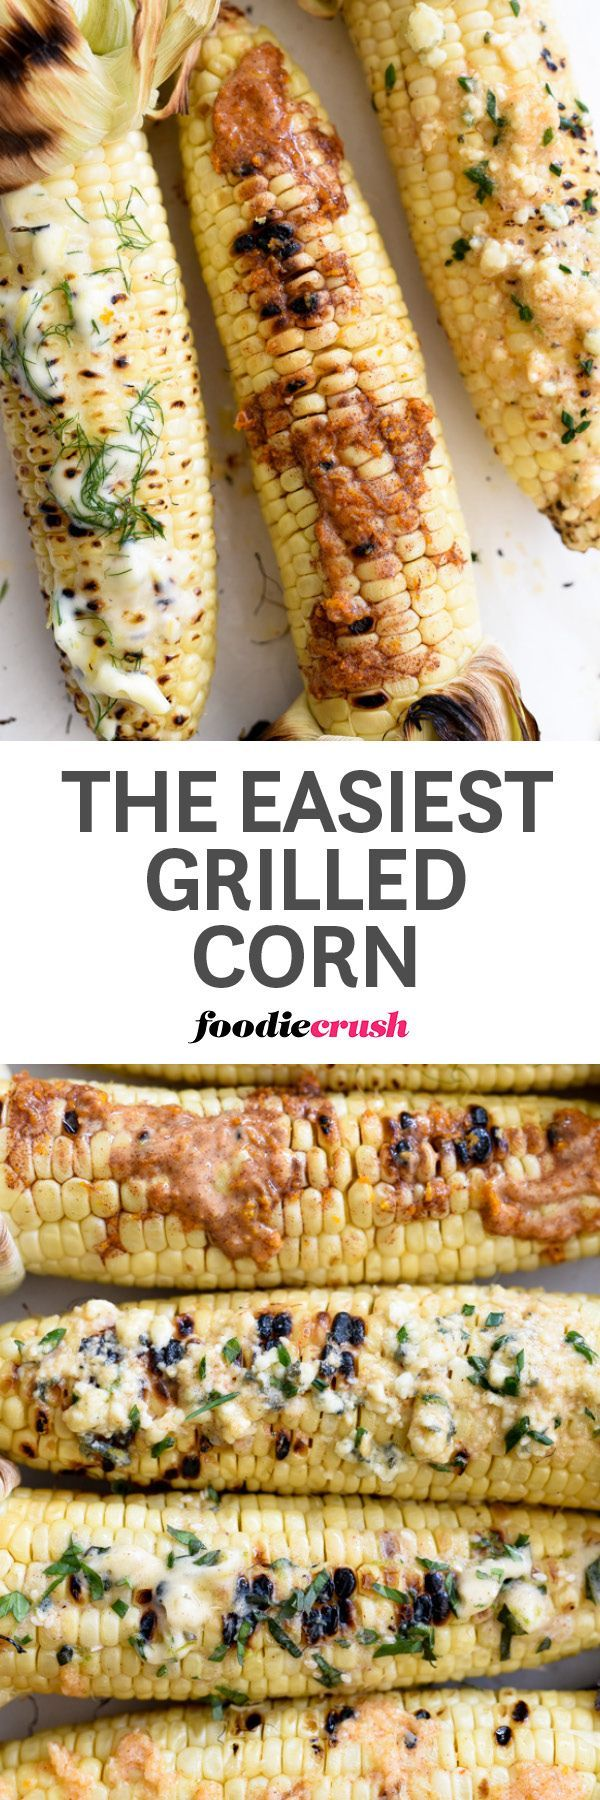 How to Make the Best Easy Grilled Corn On the Cob | foodiecrush.com | grilled corn recipe | corn on the grill | flavored butter